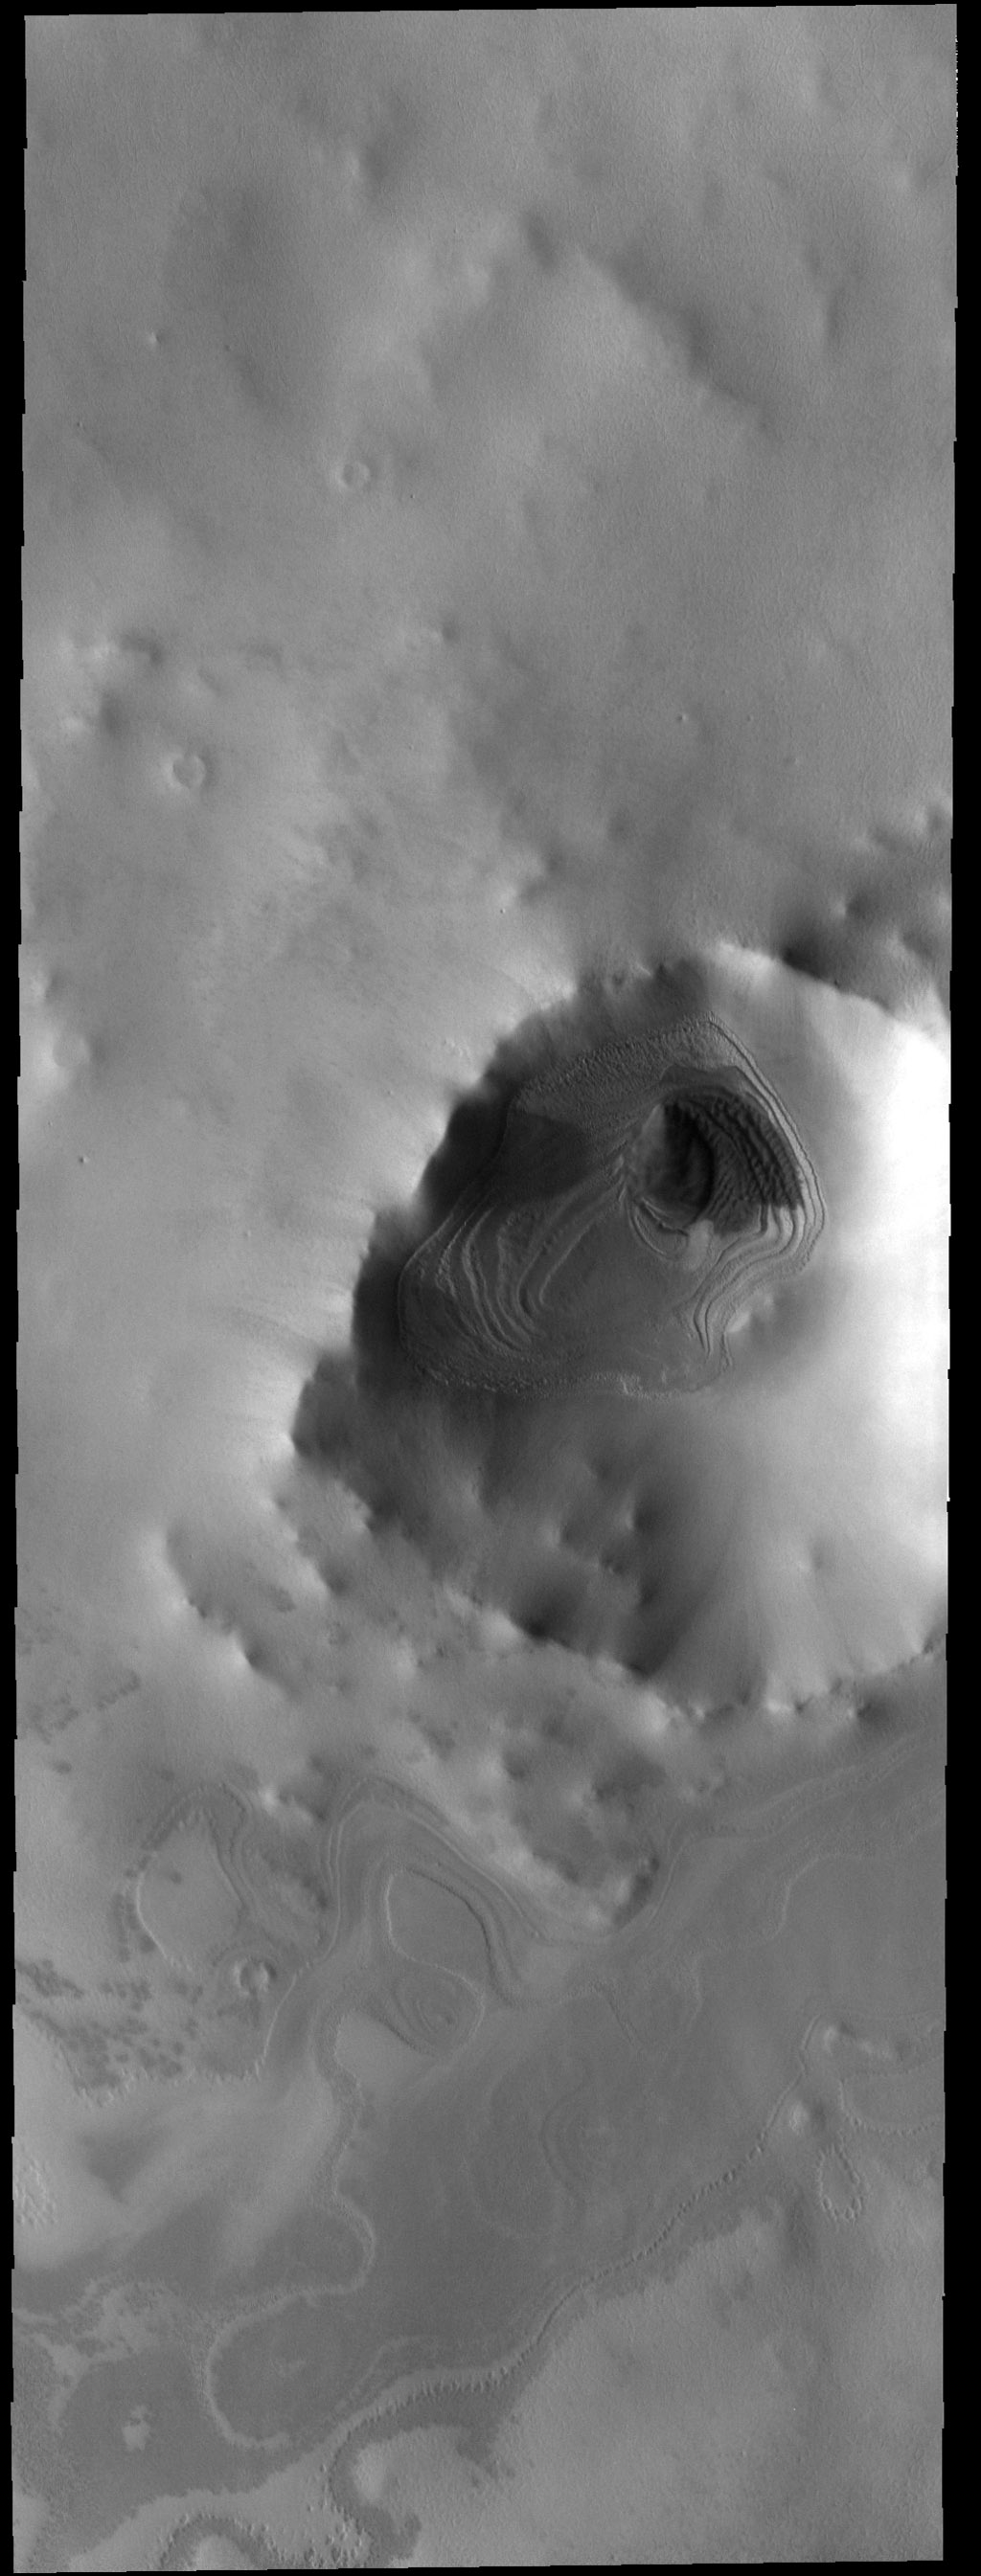 This image captured by NASA's 2001 Mars Odyssey spacecraft is of an unnamed crater near the south pole. This image was taken in the late afternoon, and the low sun angle created shadows cast by the crater rim.